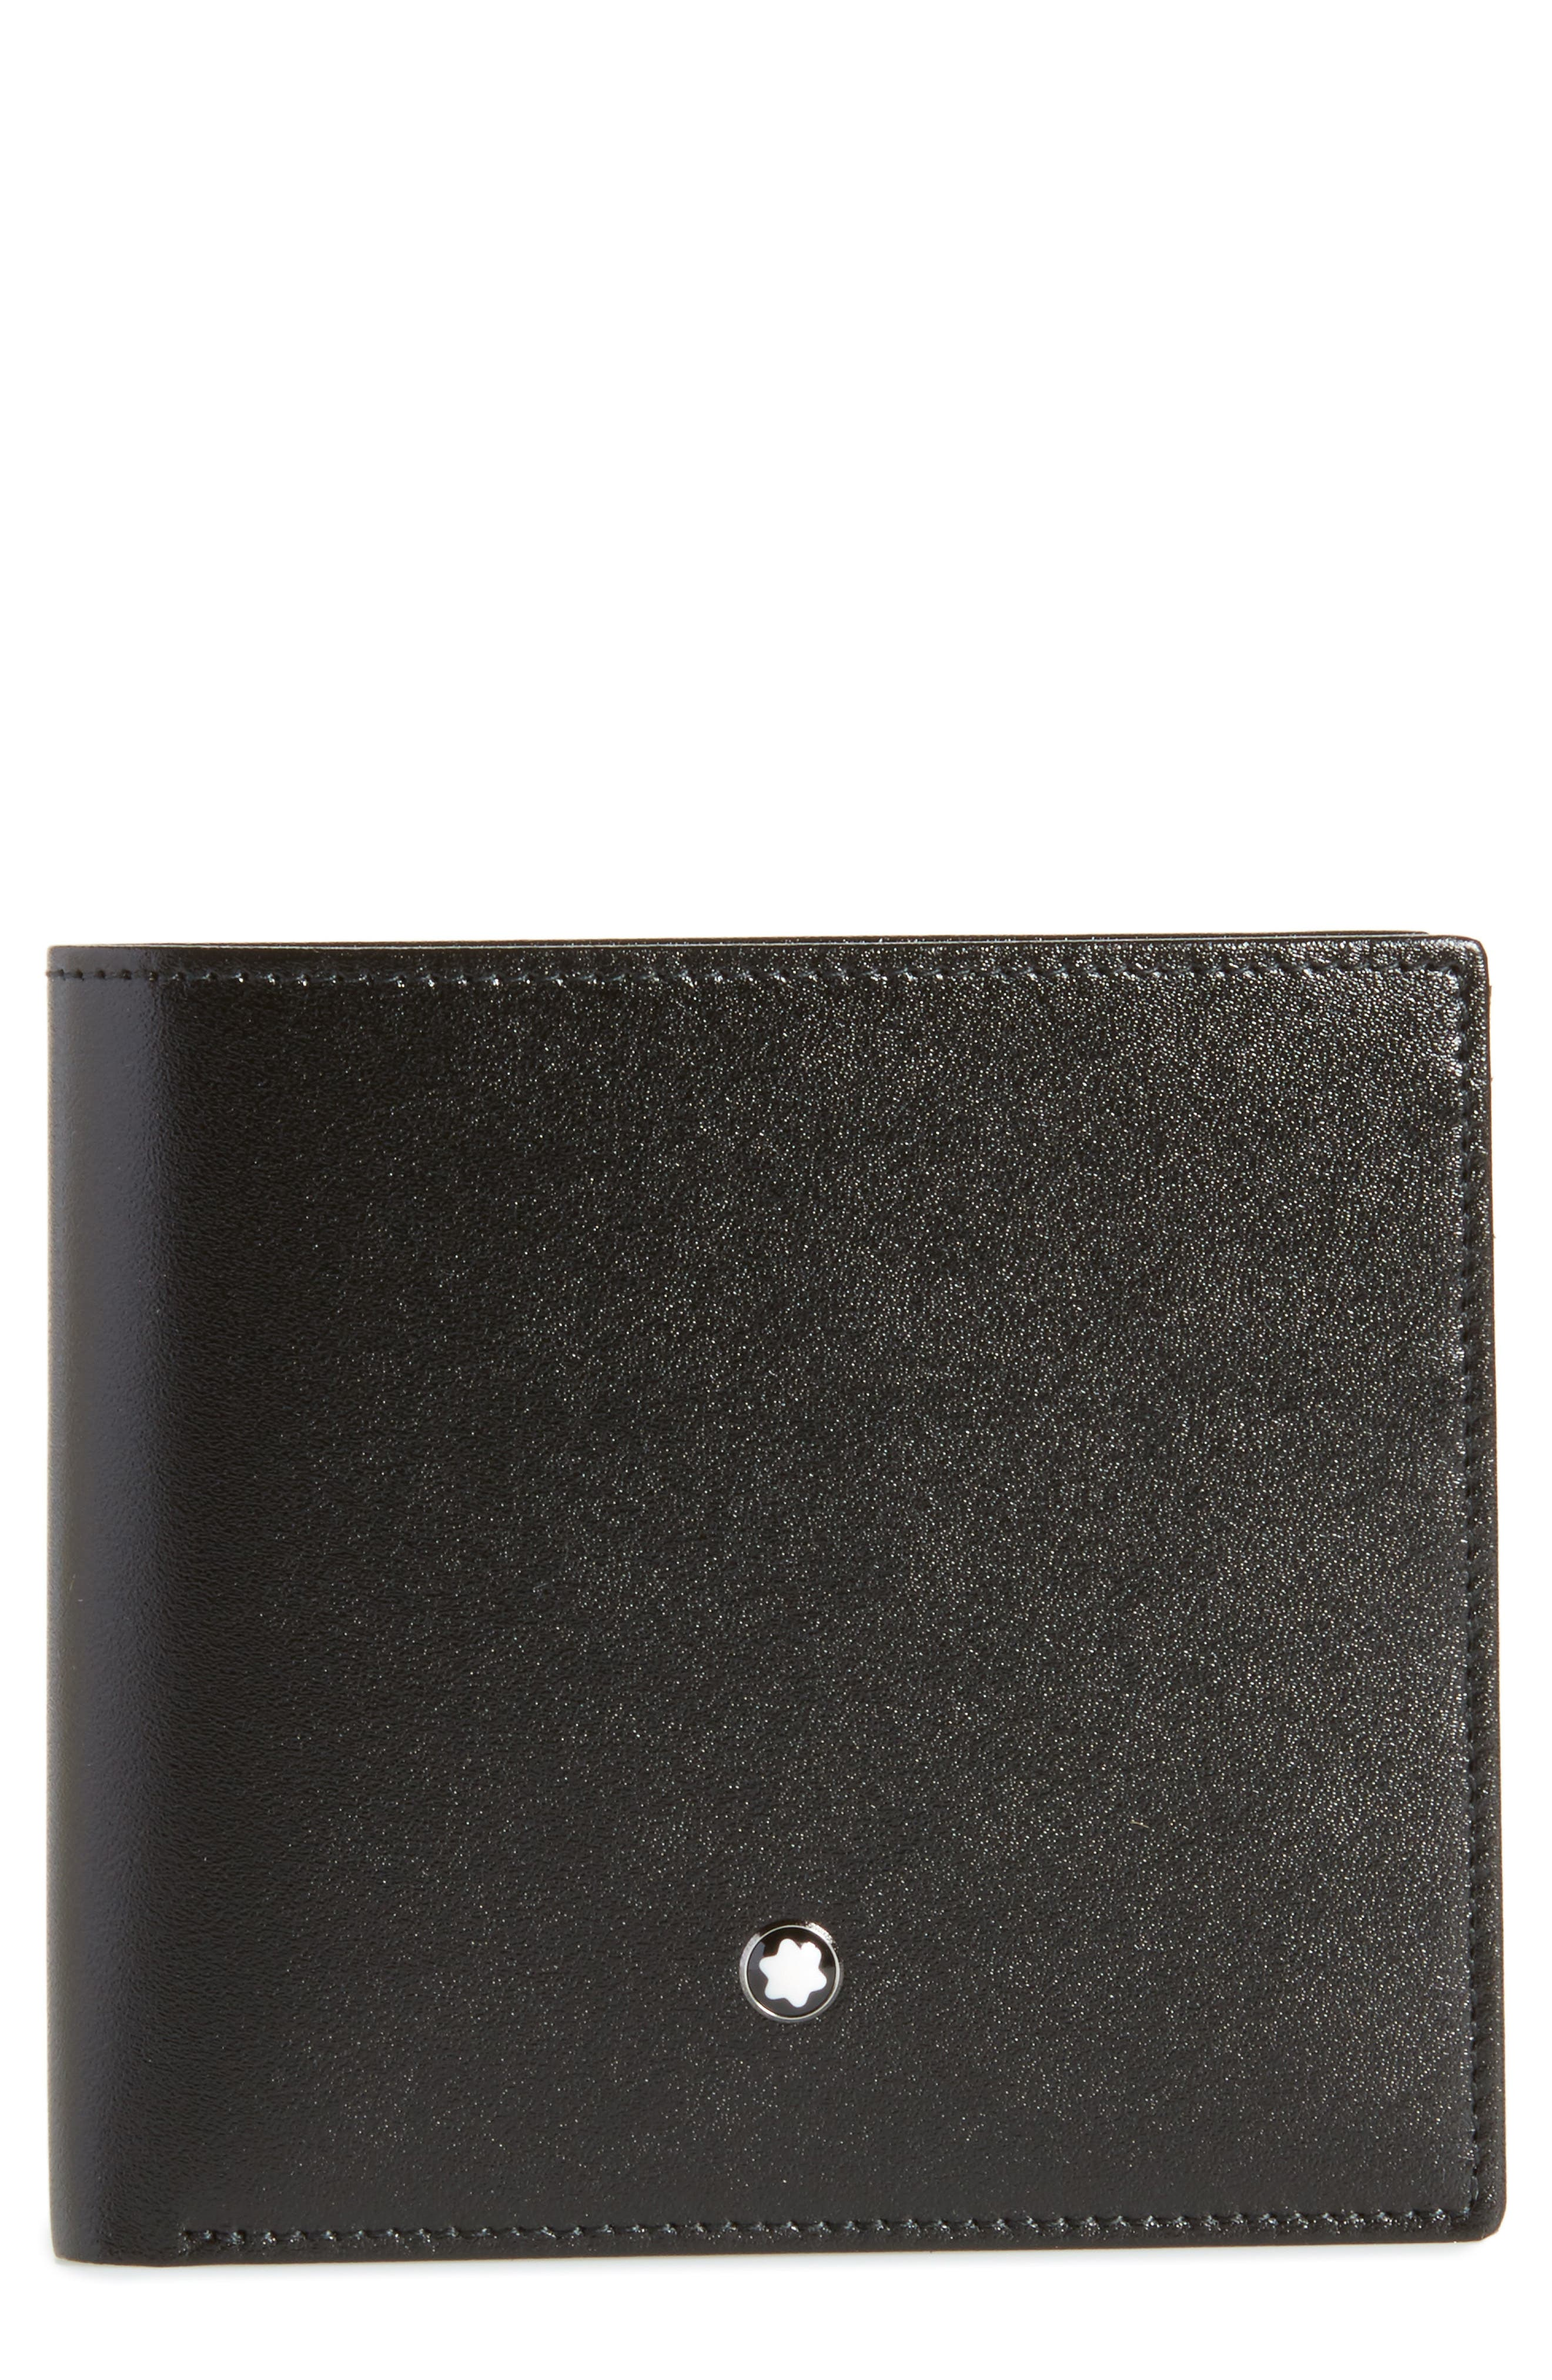 Meisterstück Leather Wallet,                             Main thumbnail 1, color,                             Black